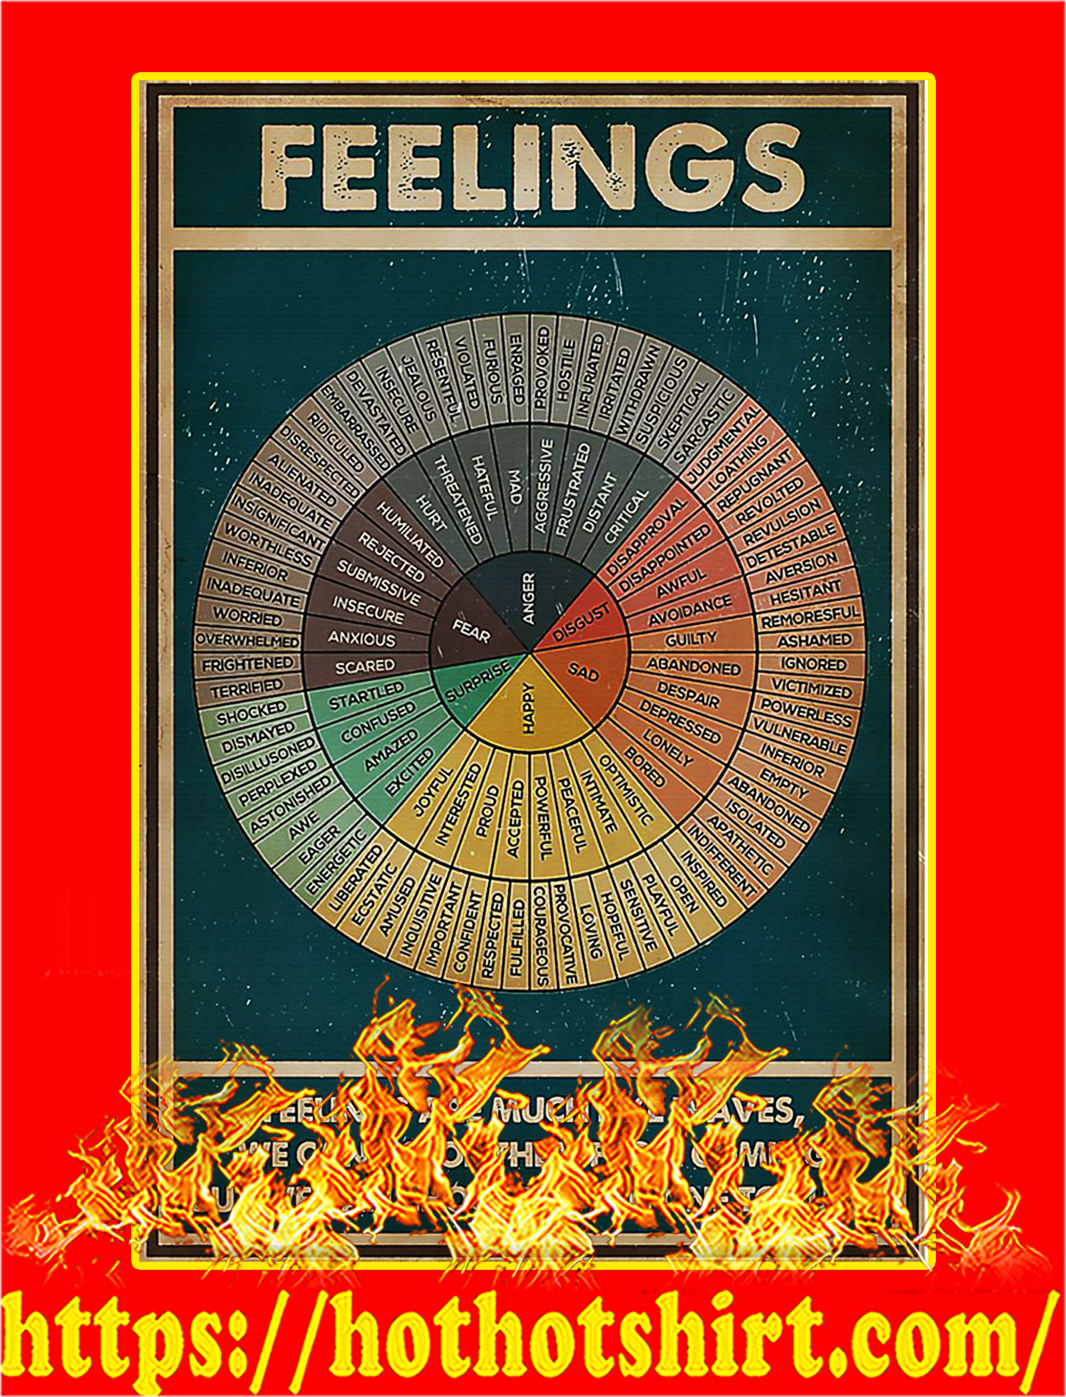 Social worker feelings poster - A1